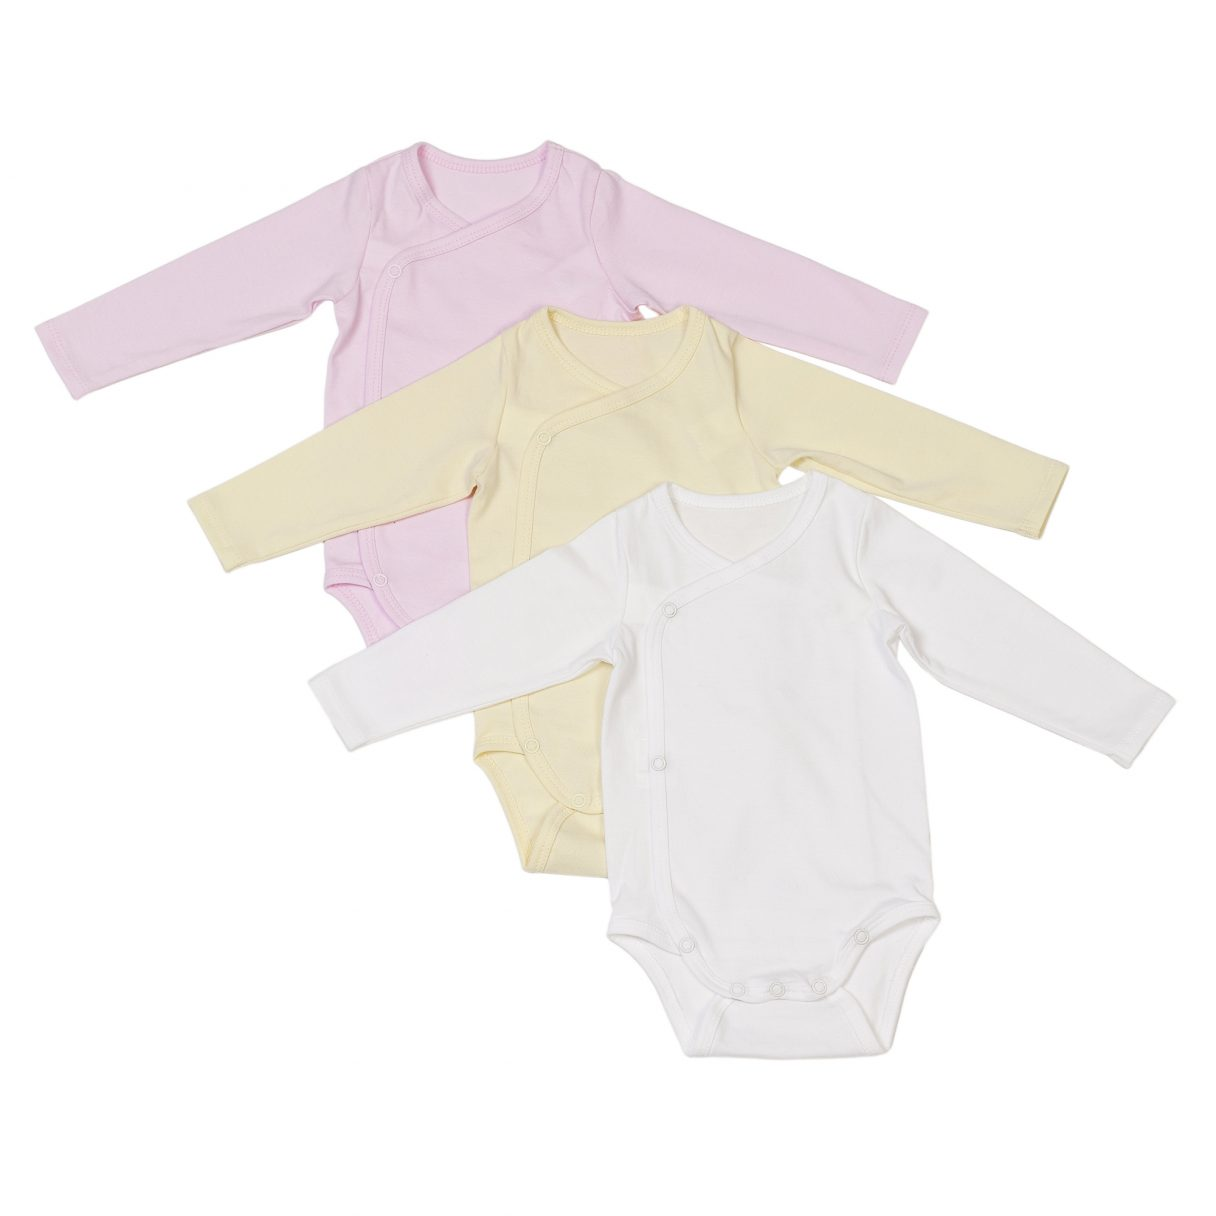 Newborn set of 3 organic cotton baby bodysuits pink yellow white